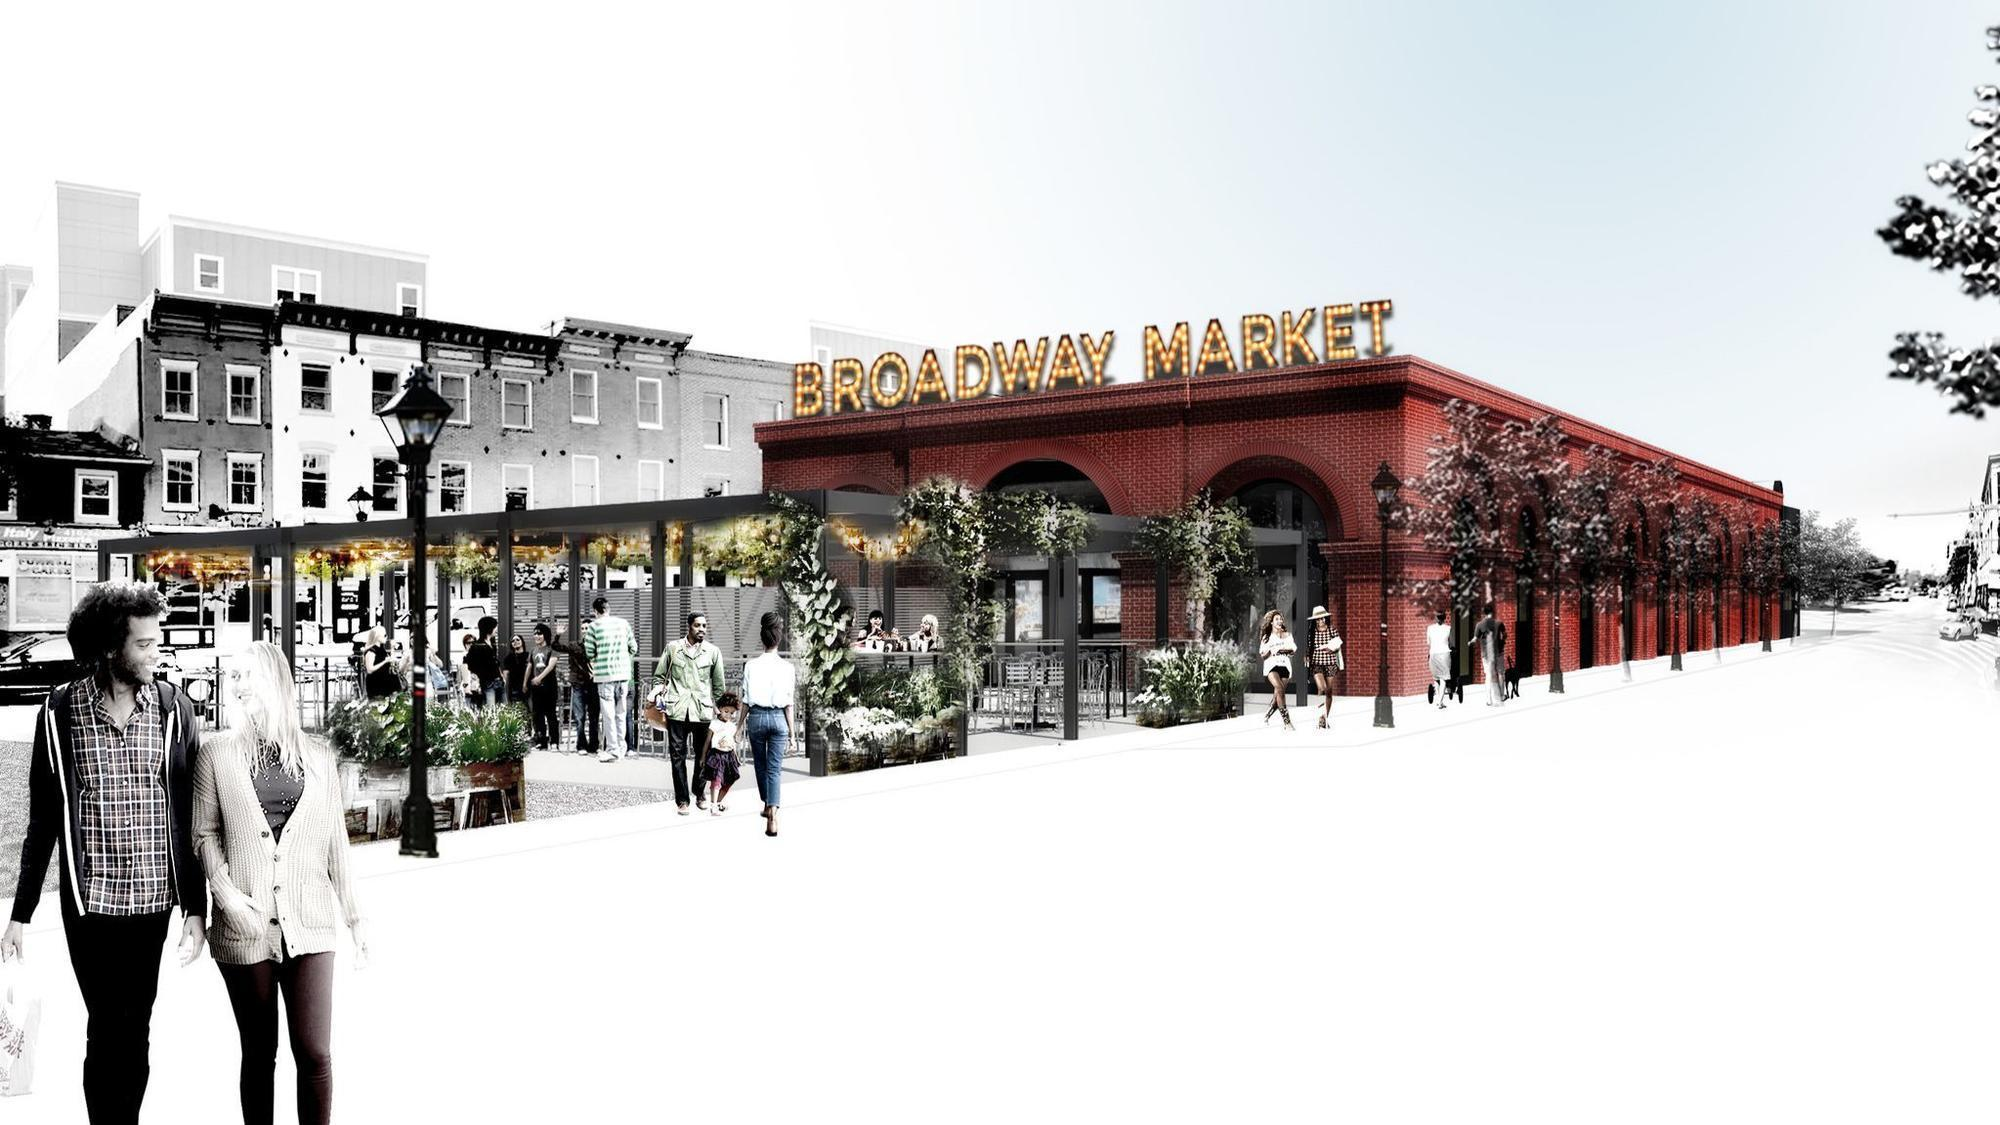 Broadway Market Upgrades Move Toward Construction With New